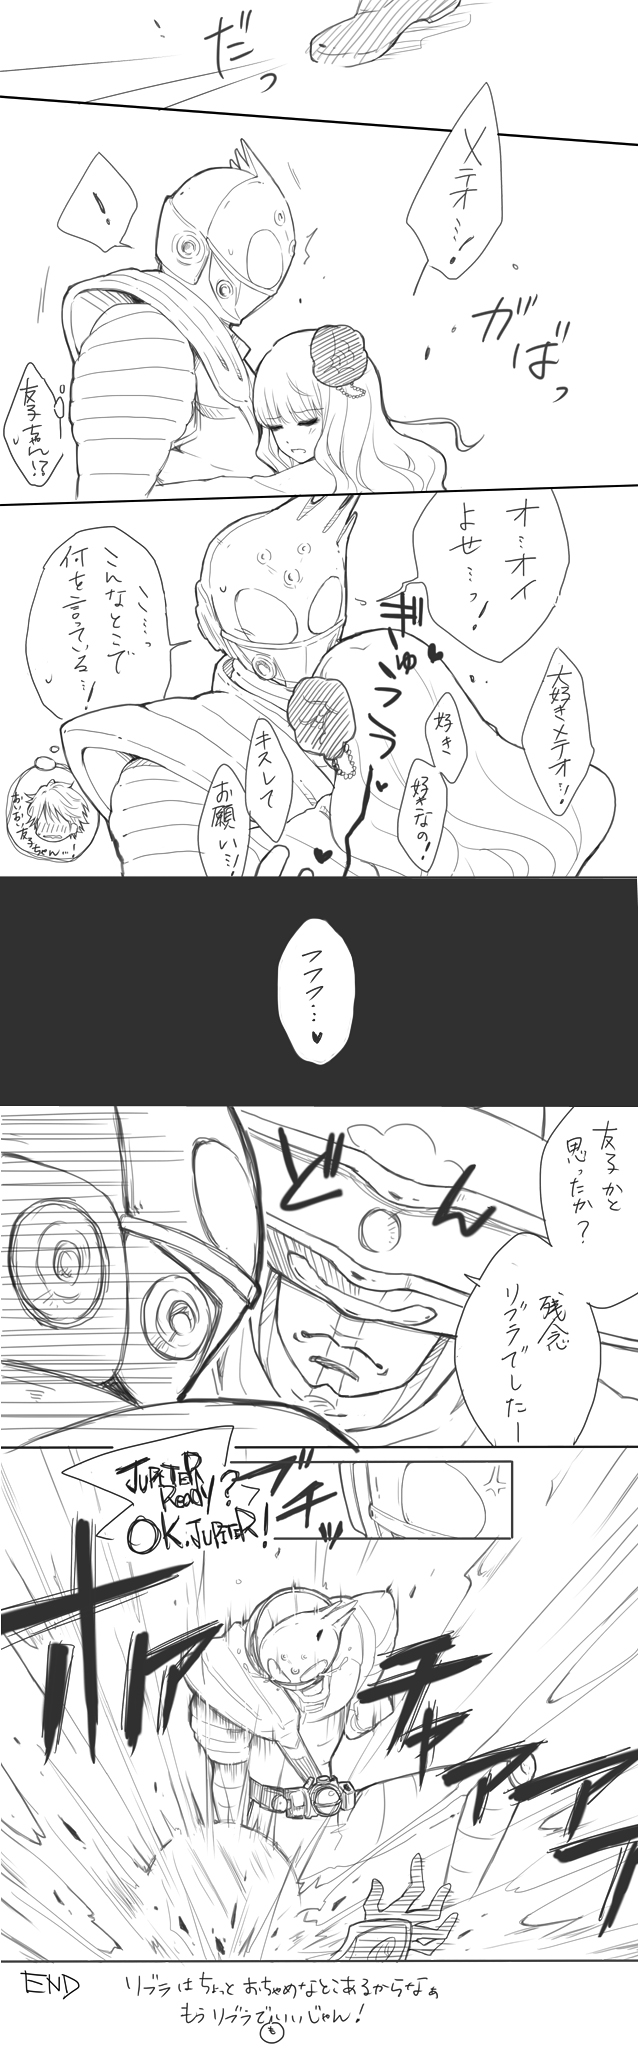 1girl 2boys anger_vein belt closed_eyes comic english eyes_closed female highres hug kamen_rider kamen_rider_fourze_(series) kamen_rider_meteor kixkanon libra_zodiarts long_hair male monochrome multiple_boys nozama_tomoko partially_translated punching sakuta_ryuusei too_bad!_it_was_just_me! translated translation_request